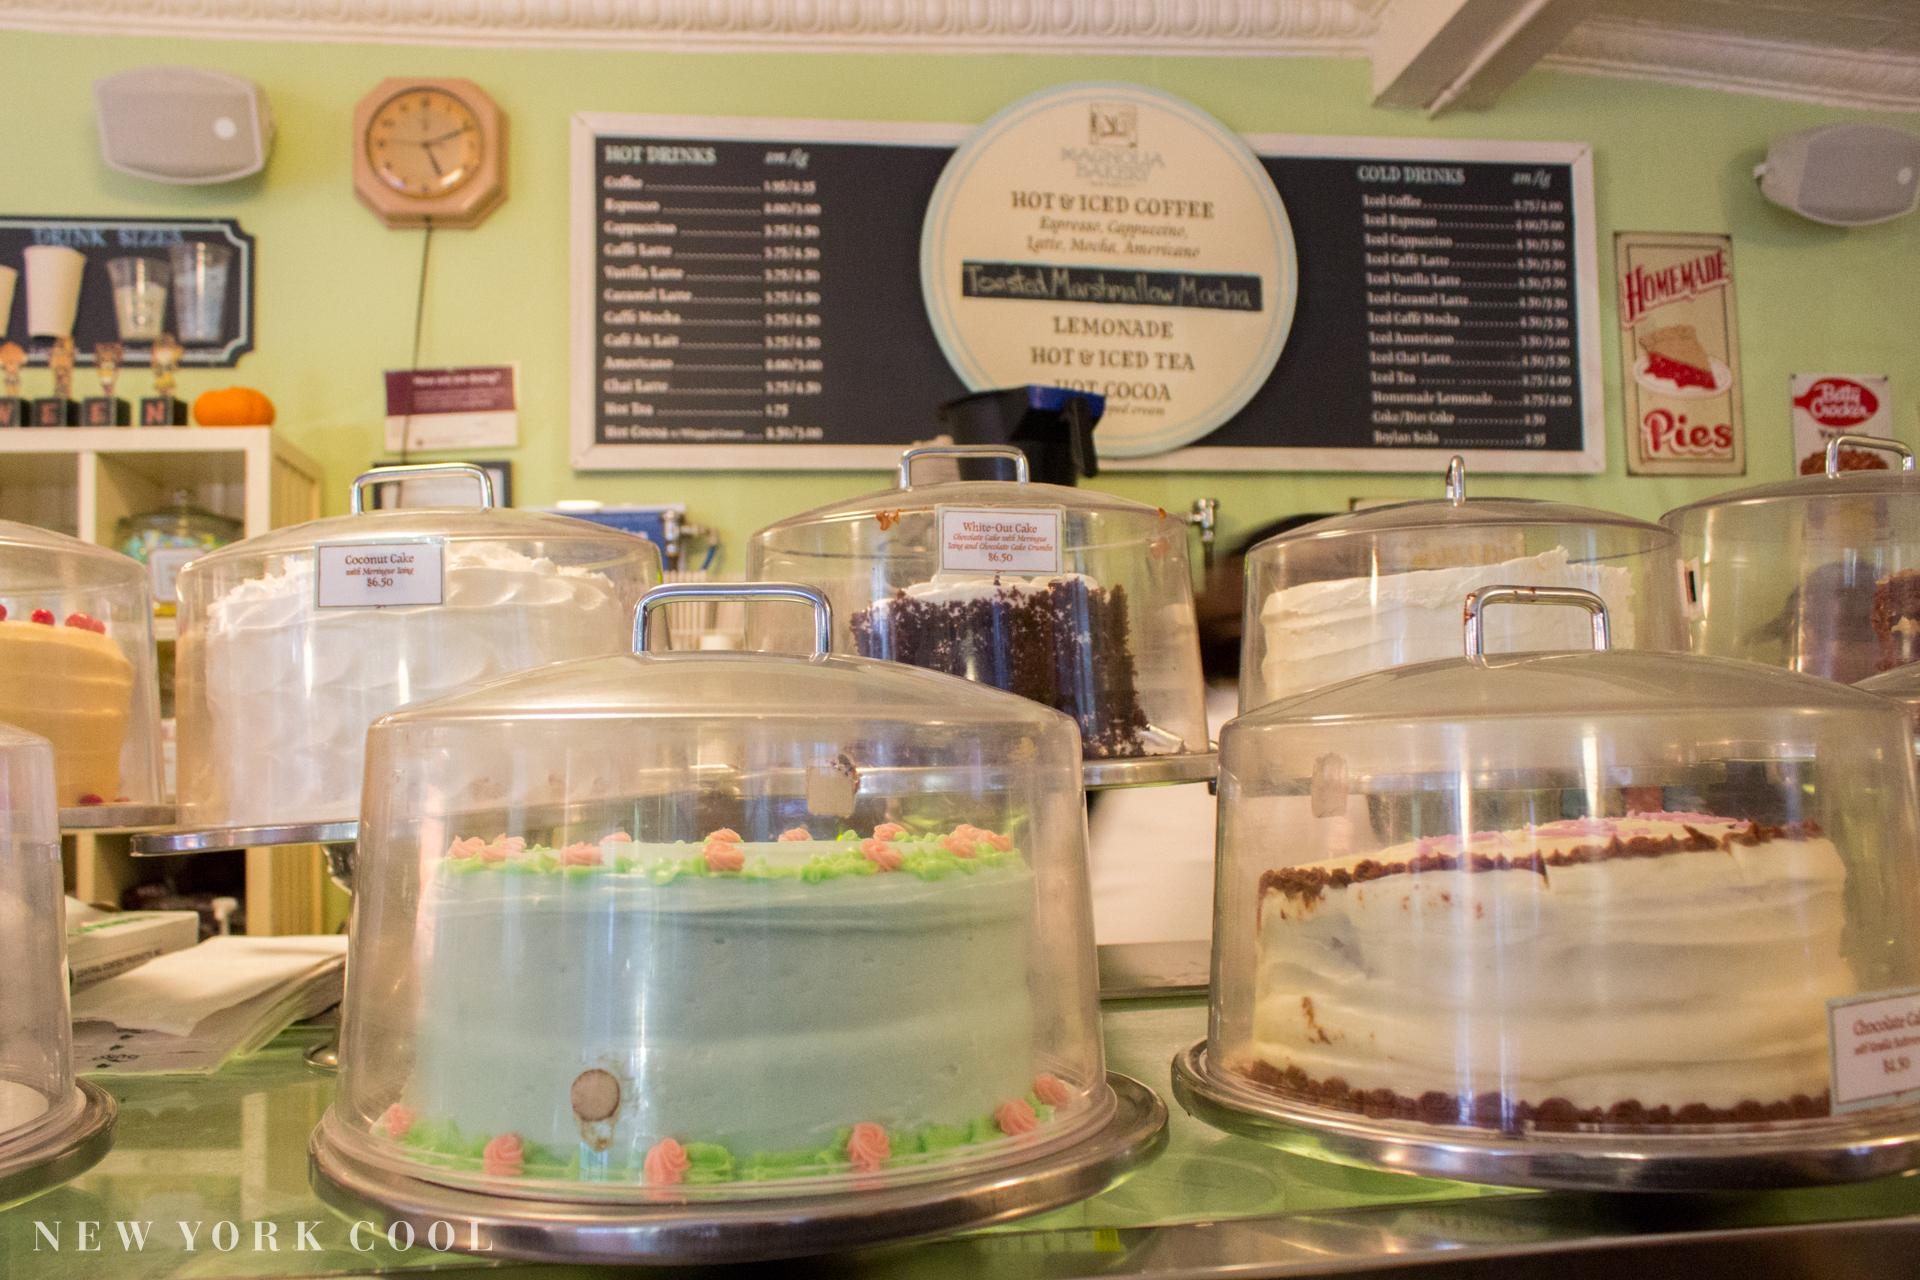 Contact  Magnolia Bakery. Magnolia Bakery   New York Cool